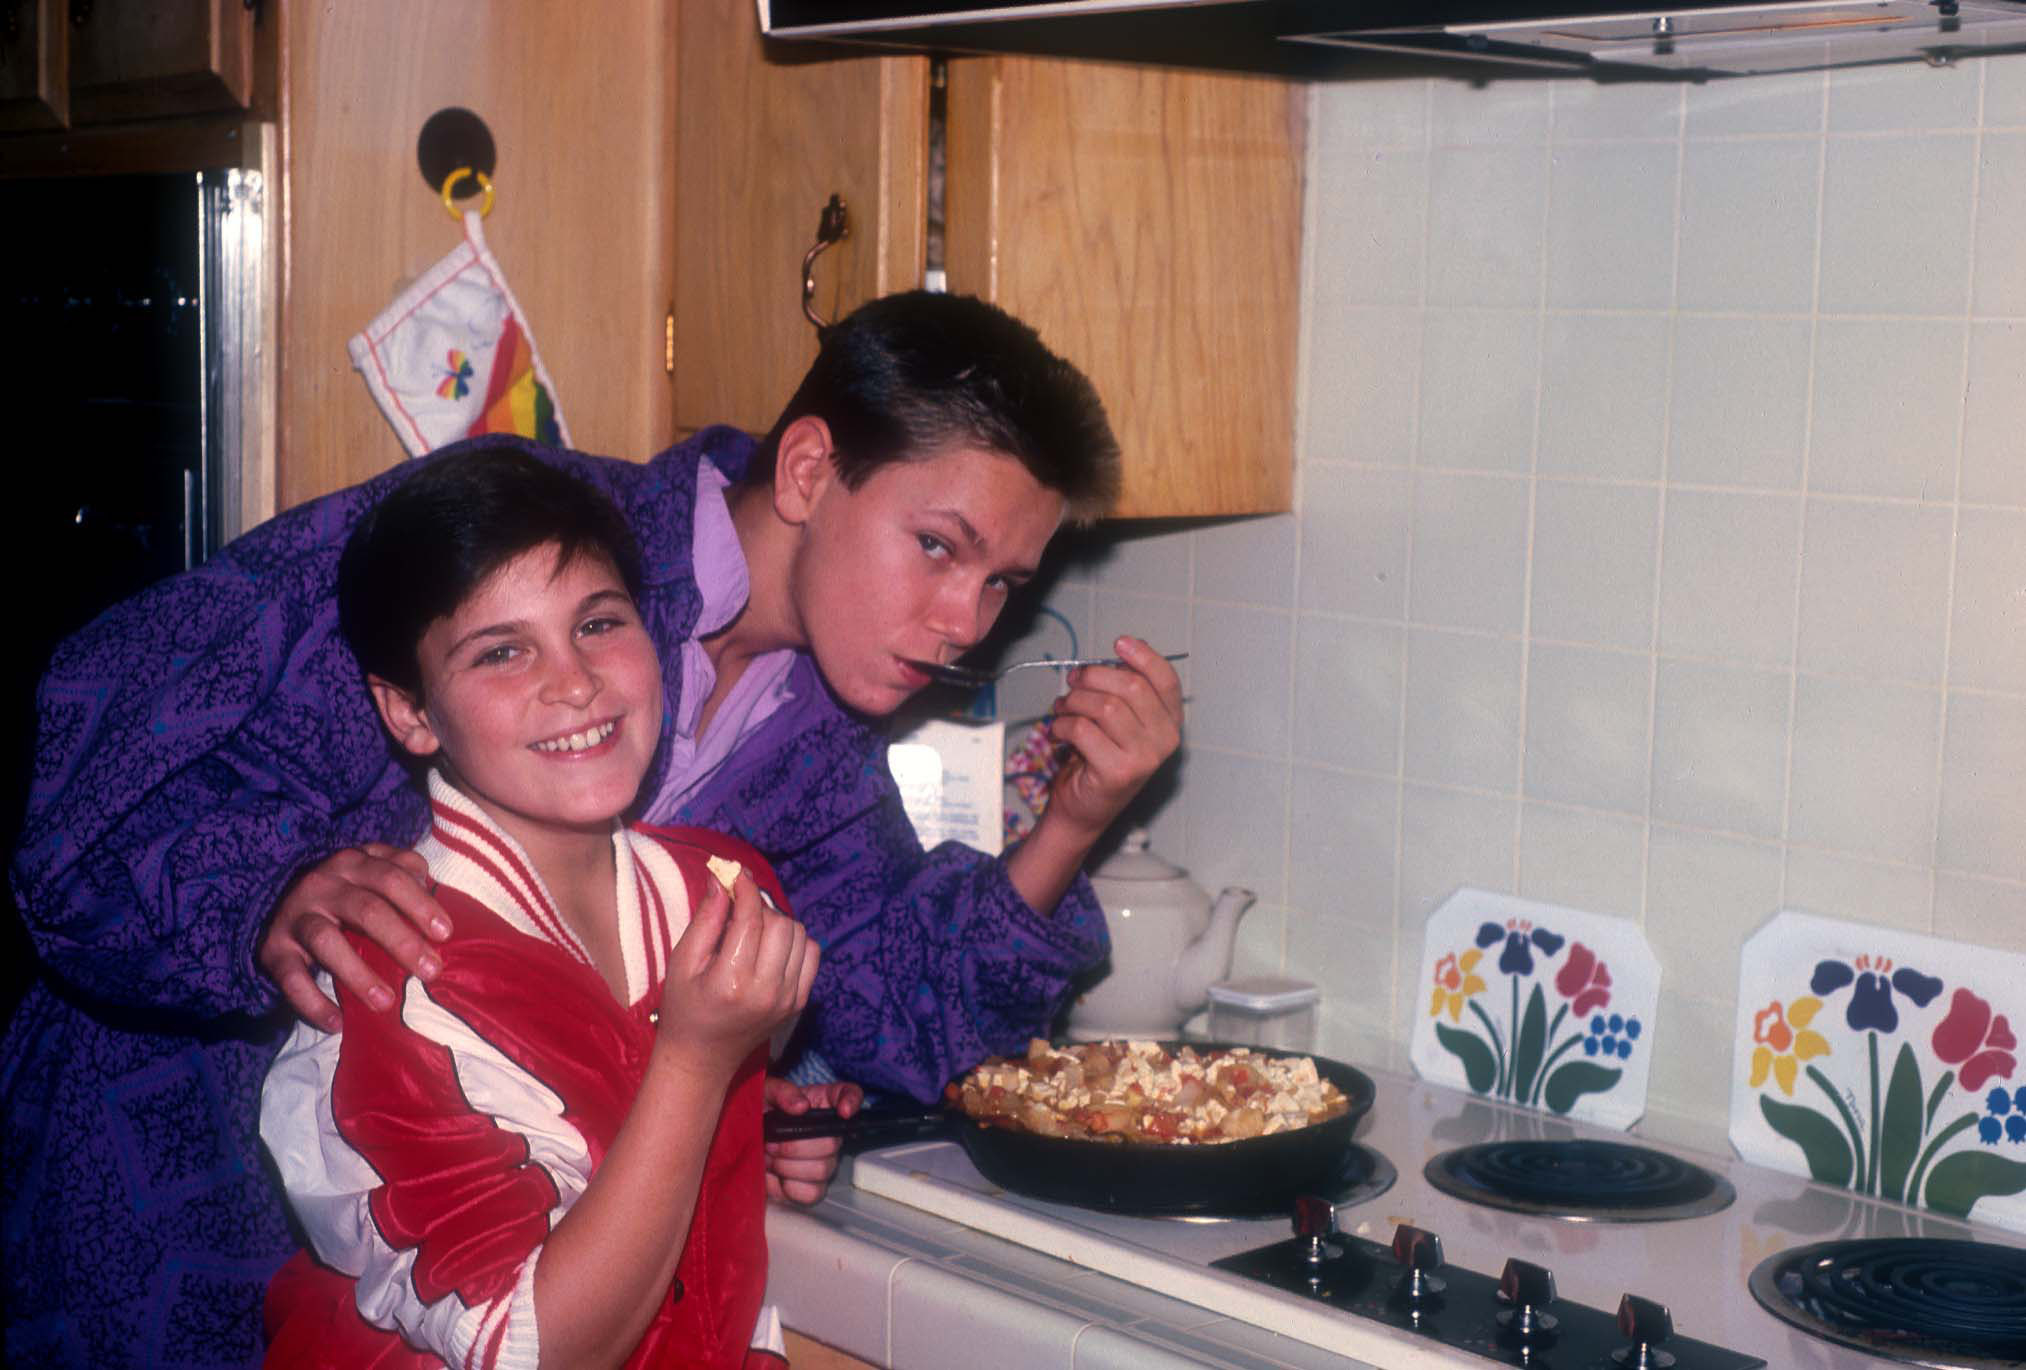 American actors Joaquin and River Phoenix cooking at their home in Los Angeles, California, US, circa 1985.